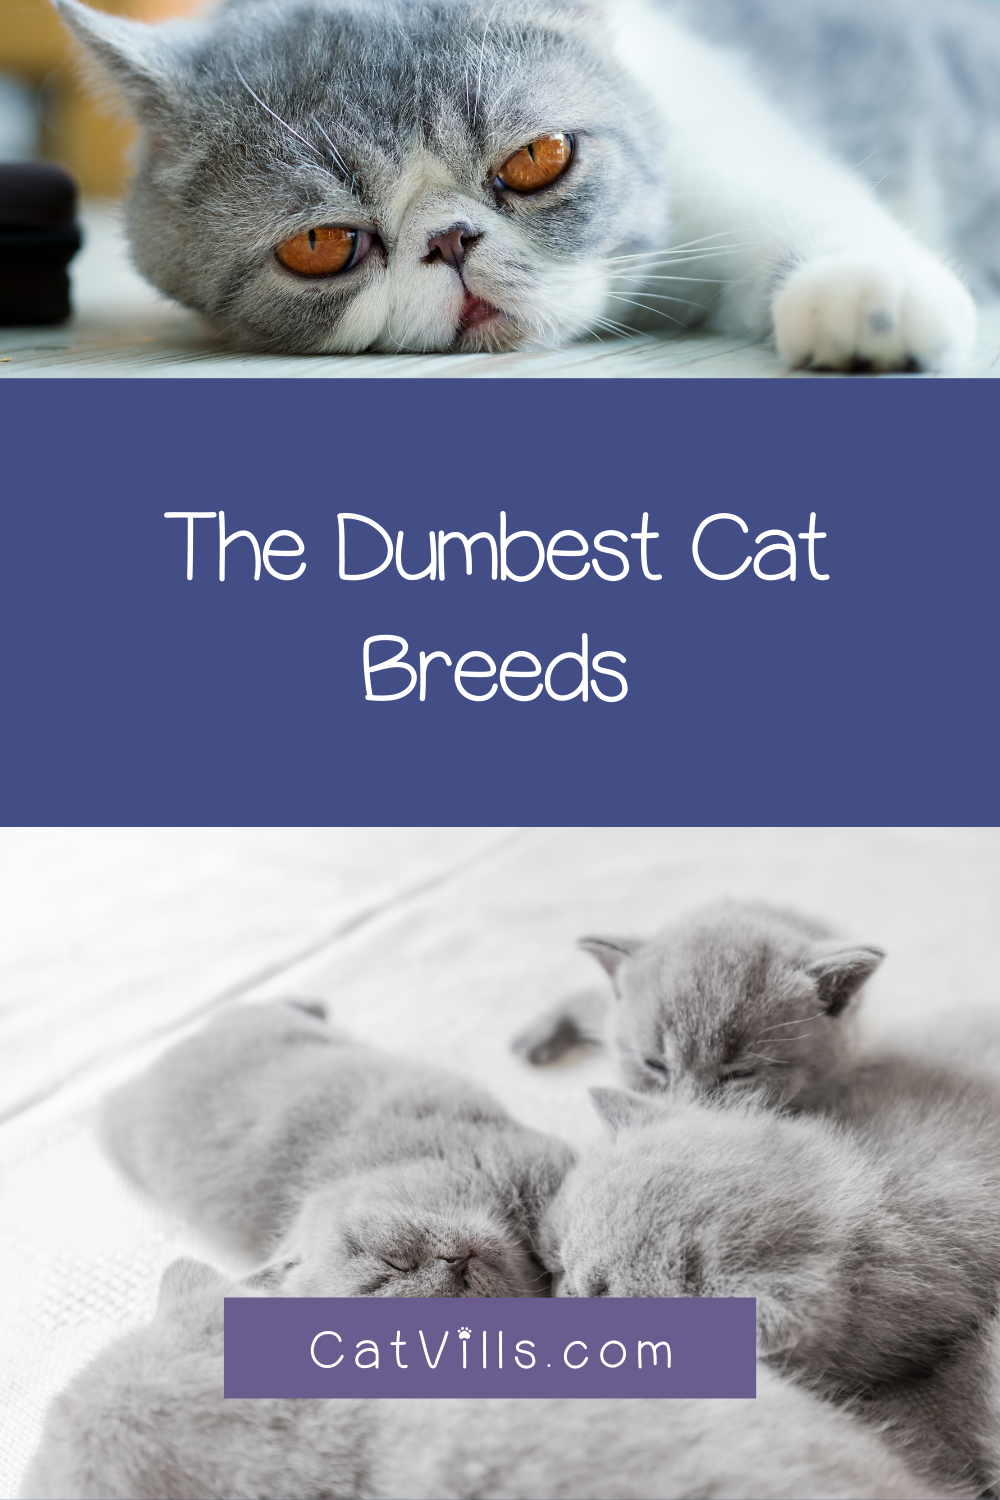 6 Dumbest Cat Breeds According To Humans Catvills In 2020 Dumb Cats Cat Breeds Cats